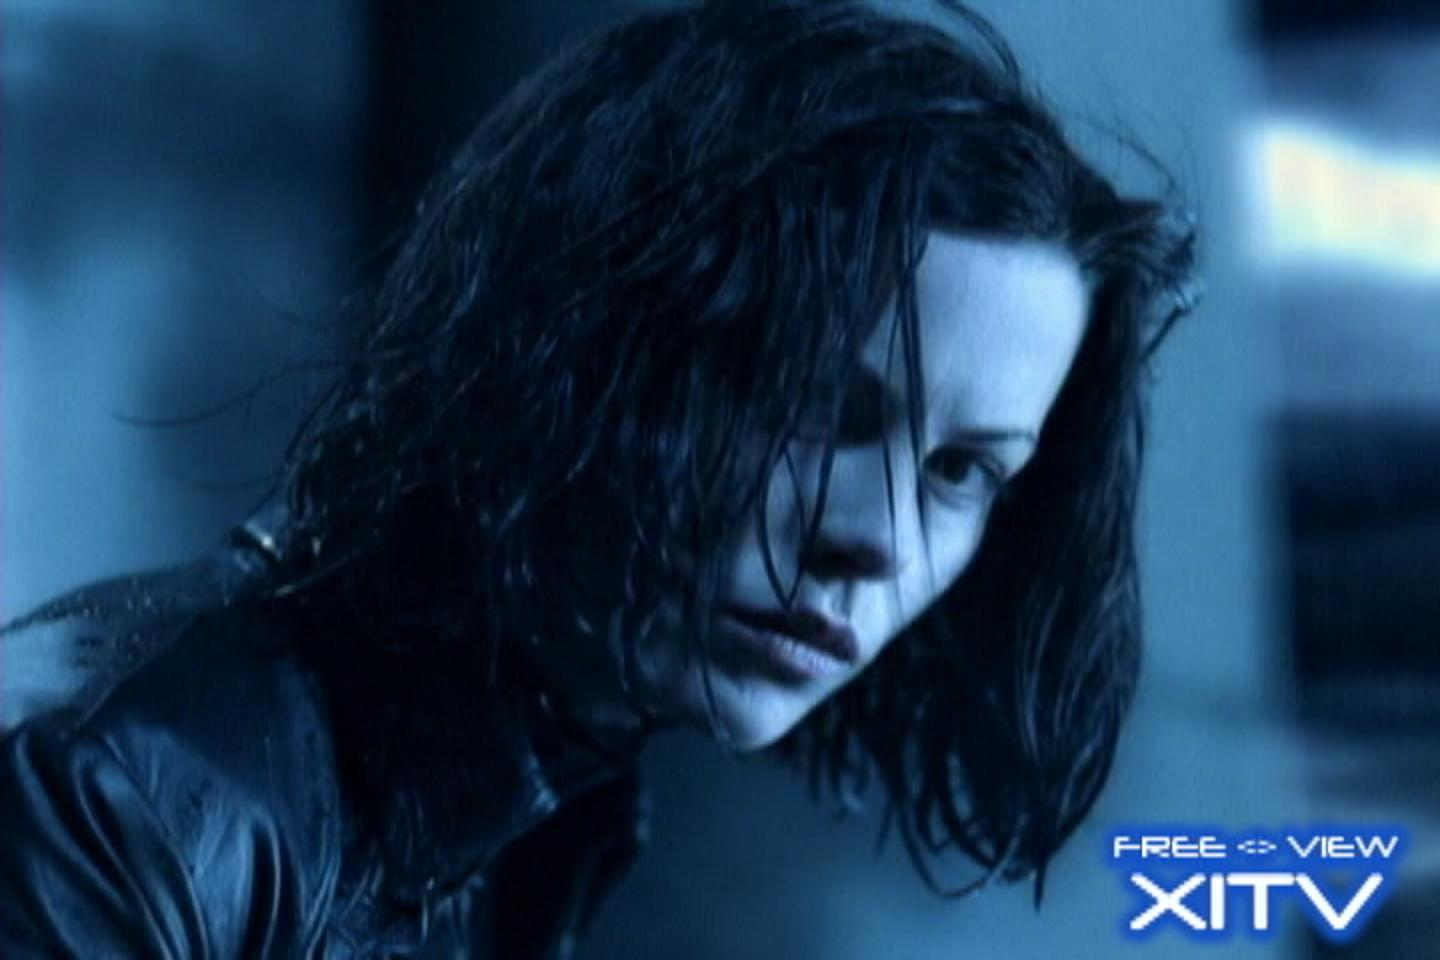 Watch Now! XITV FREE <> VIEW™  Underworld! Starring Kate Beckinsale! XITV Is Must See TV!